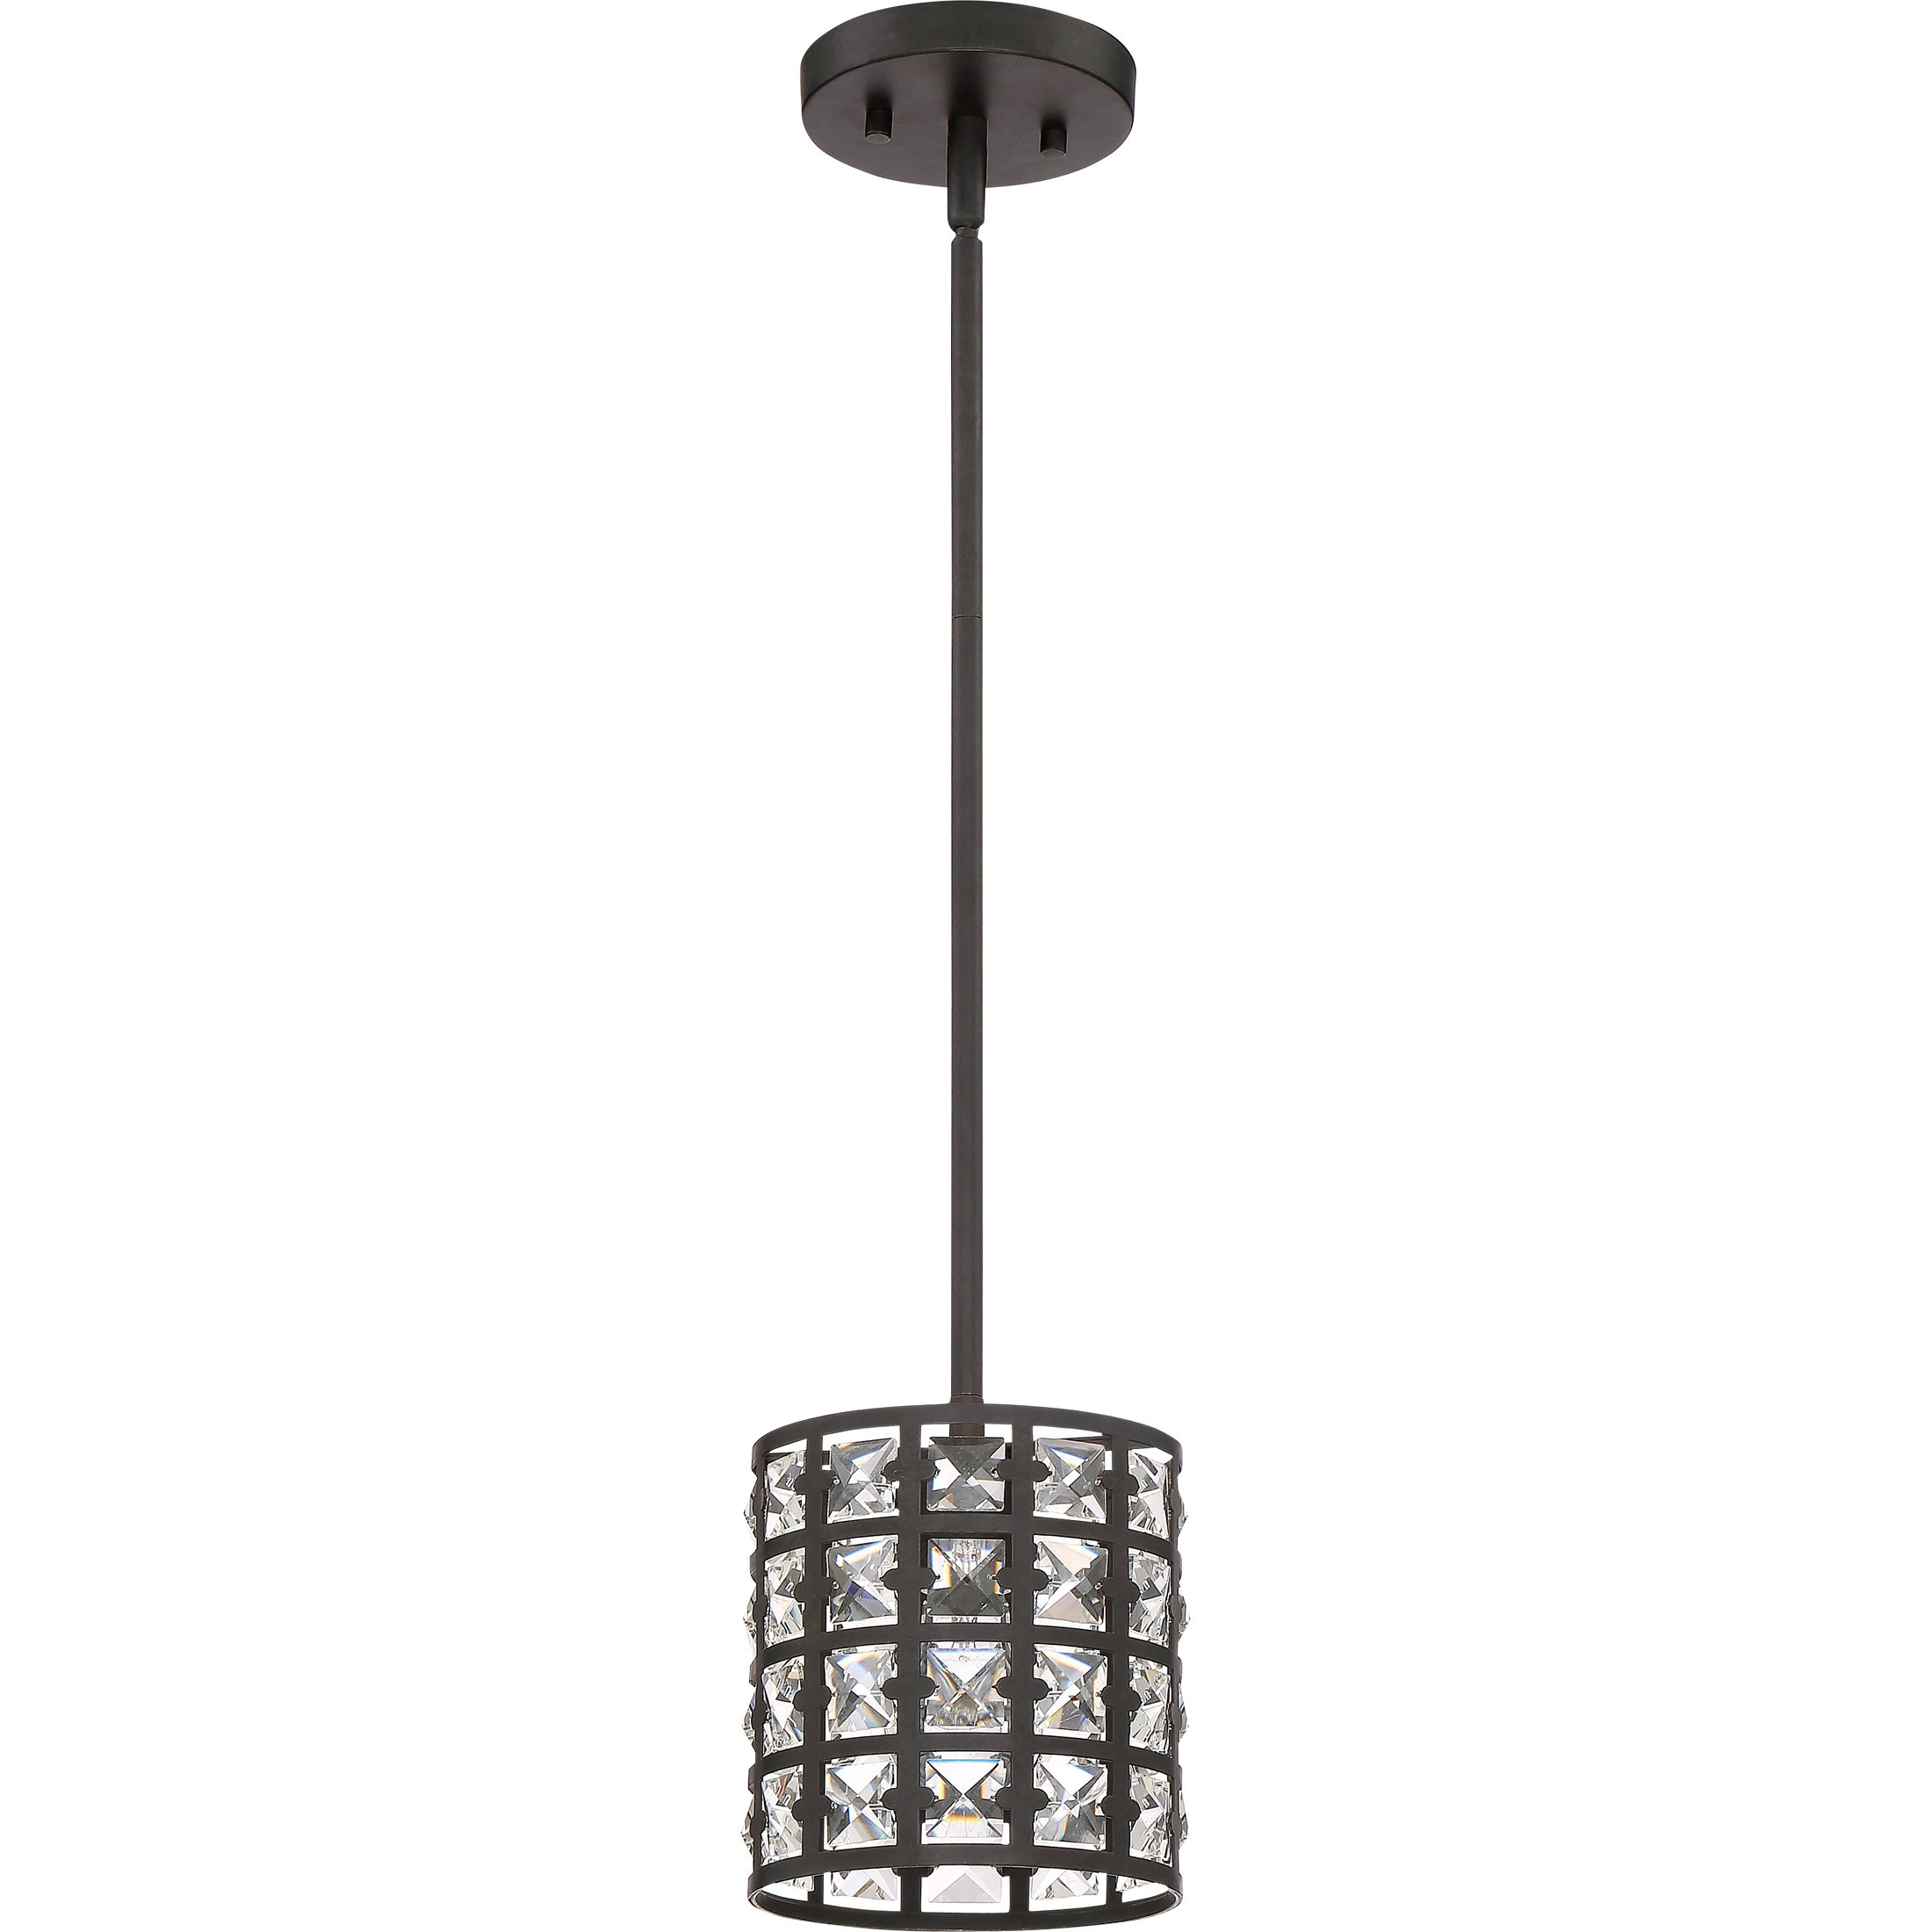 Quoizel One Light Mini Pendant LXY1506IB, Small, Imperial Bronze by Quoizel (Image #2)